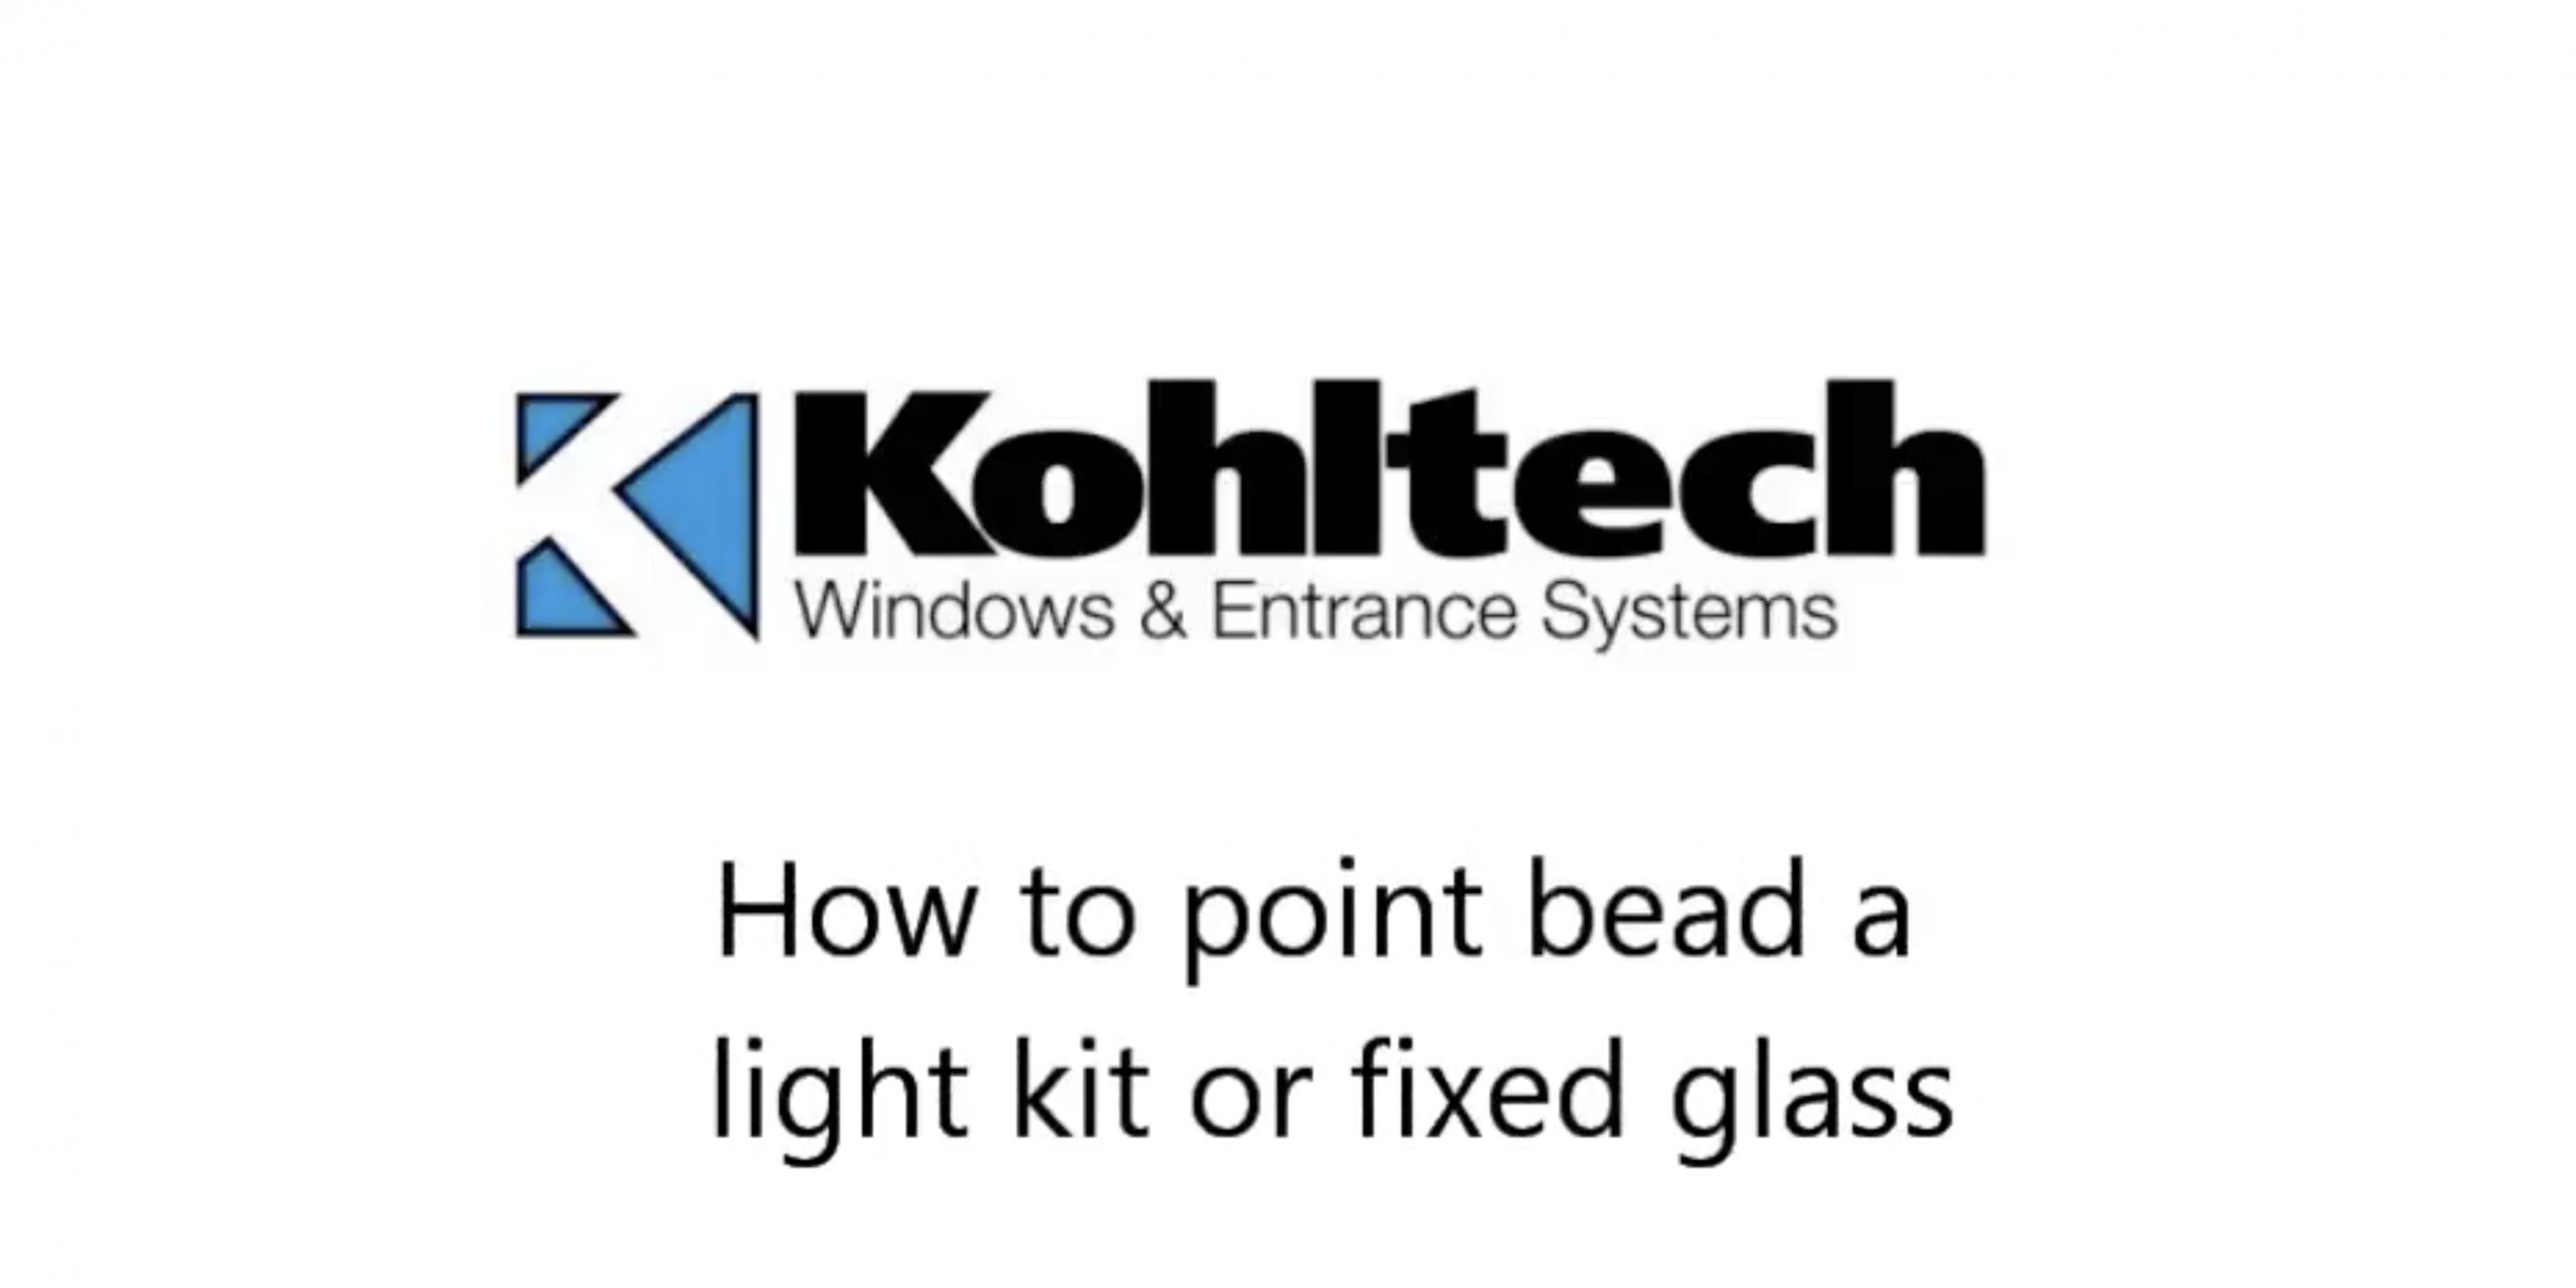 Point Bead A Lite Kit of Fixed Glass